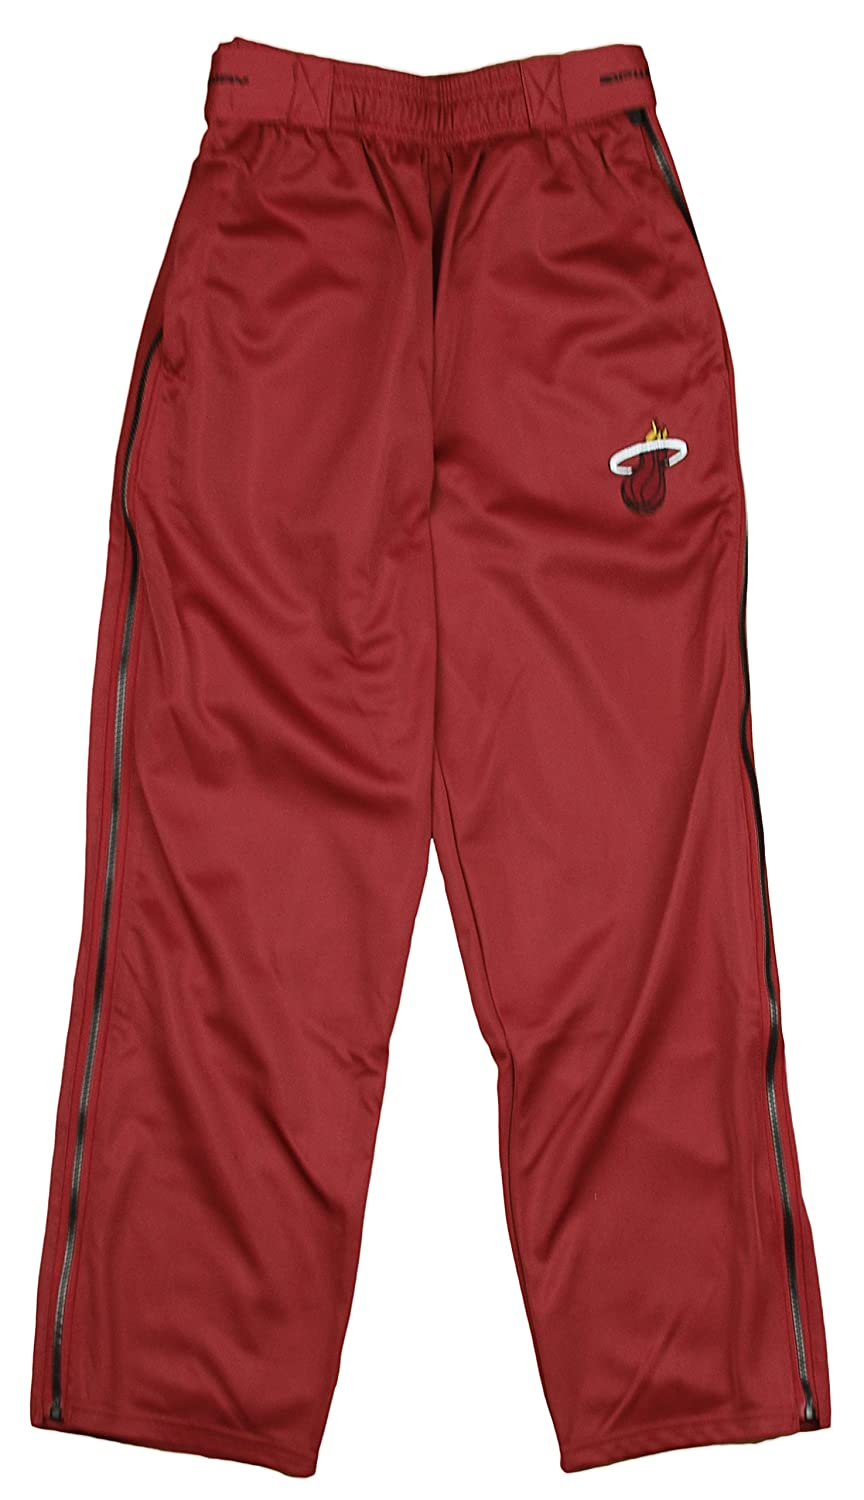 Miami Heat NBA Big Boys Tear-Away Pants, Red Zipway